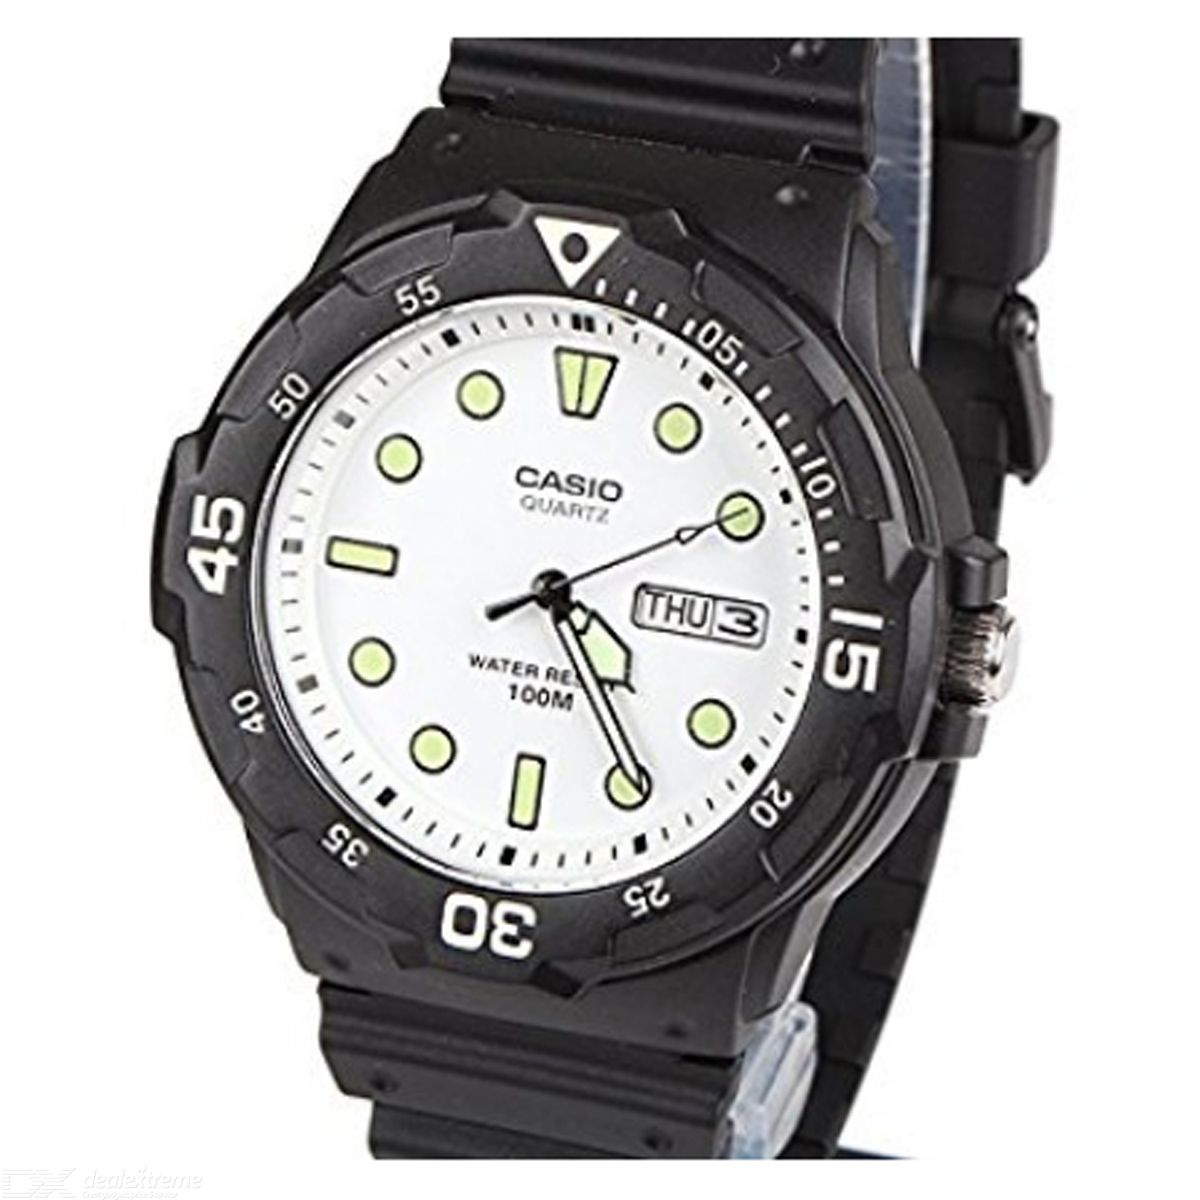 CASIO MRW-200H-7EVDF Analog Watch - Black/White (Without Box)